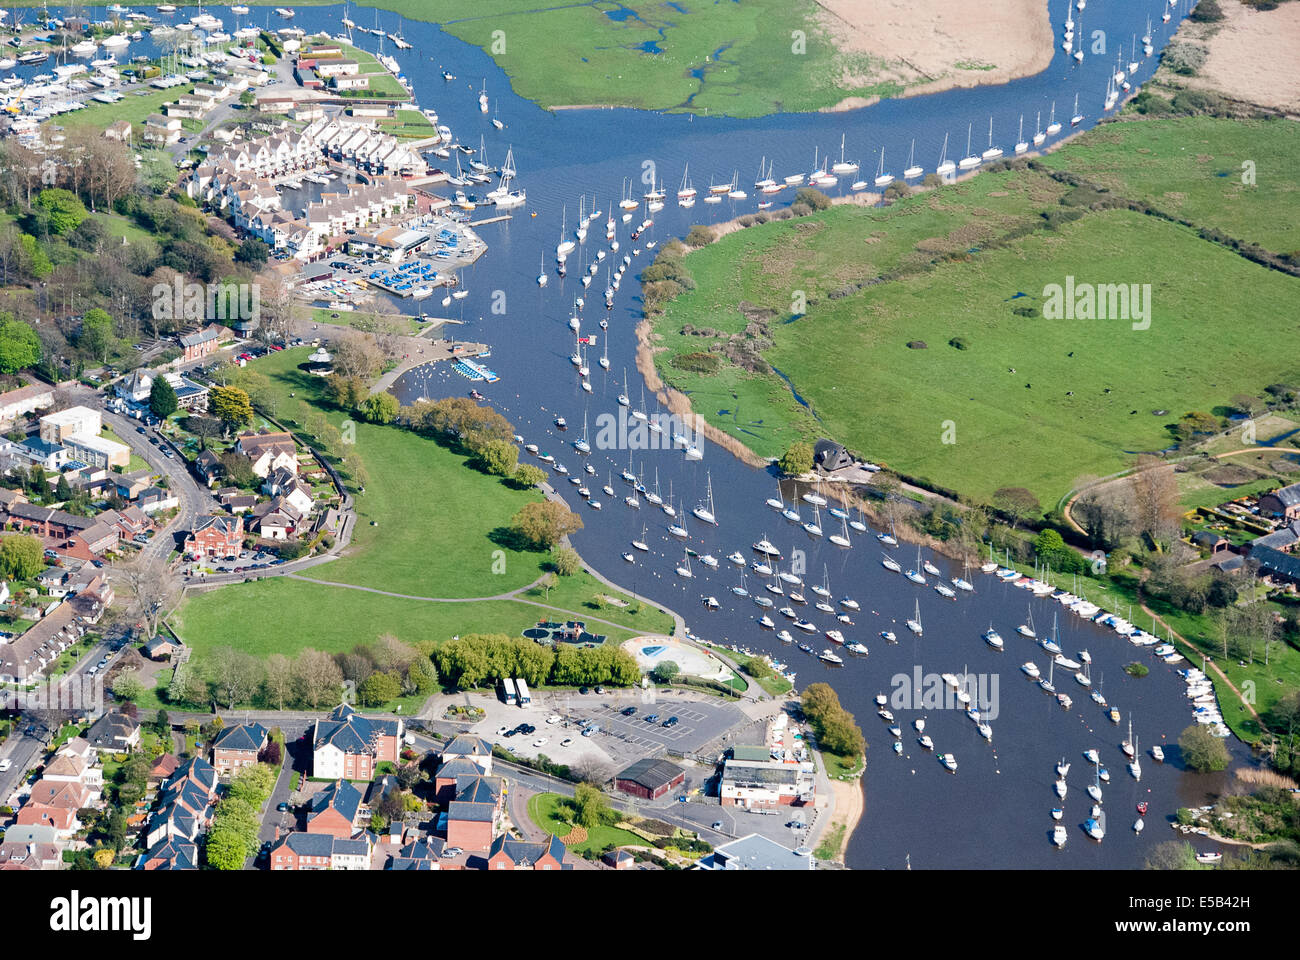 Aerial view moored boat in Christchurch Harbour Dorset UK - Stock Image